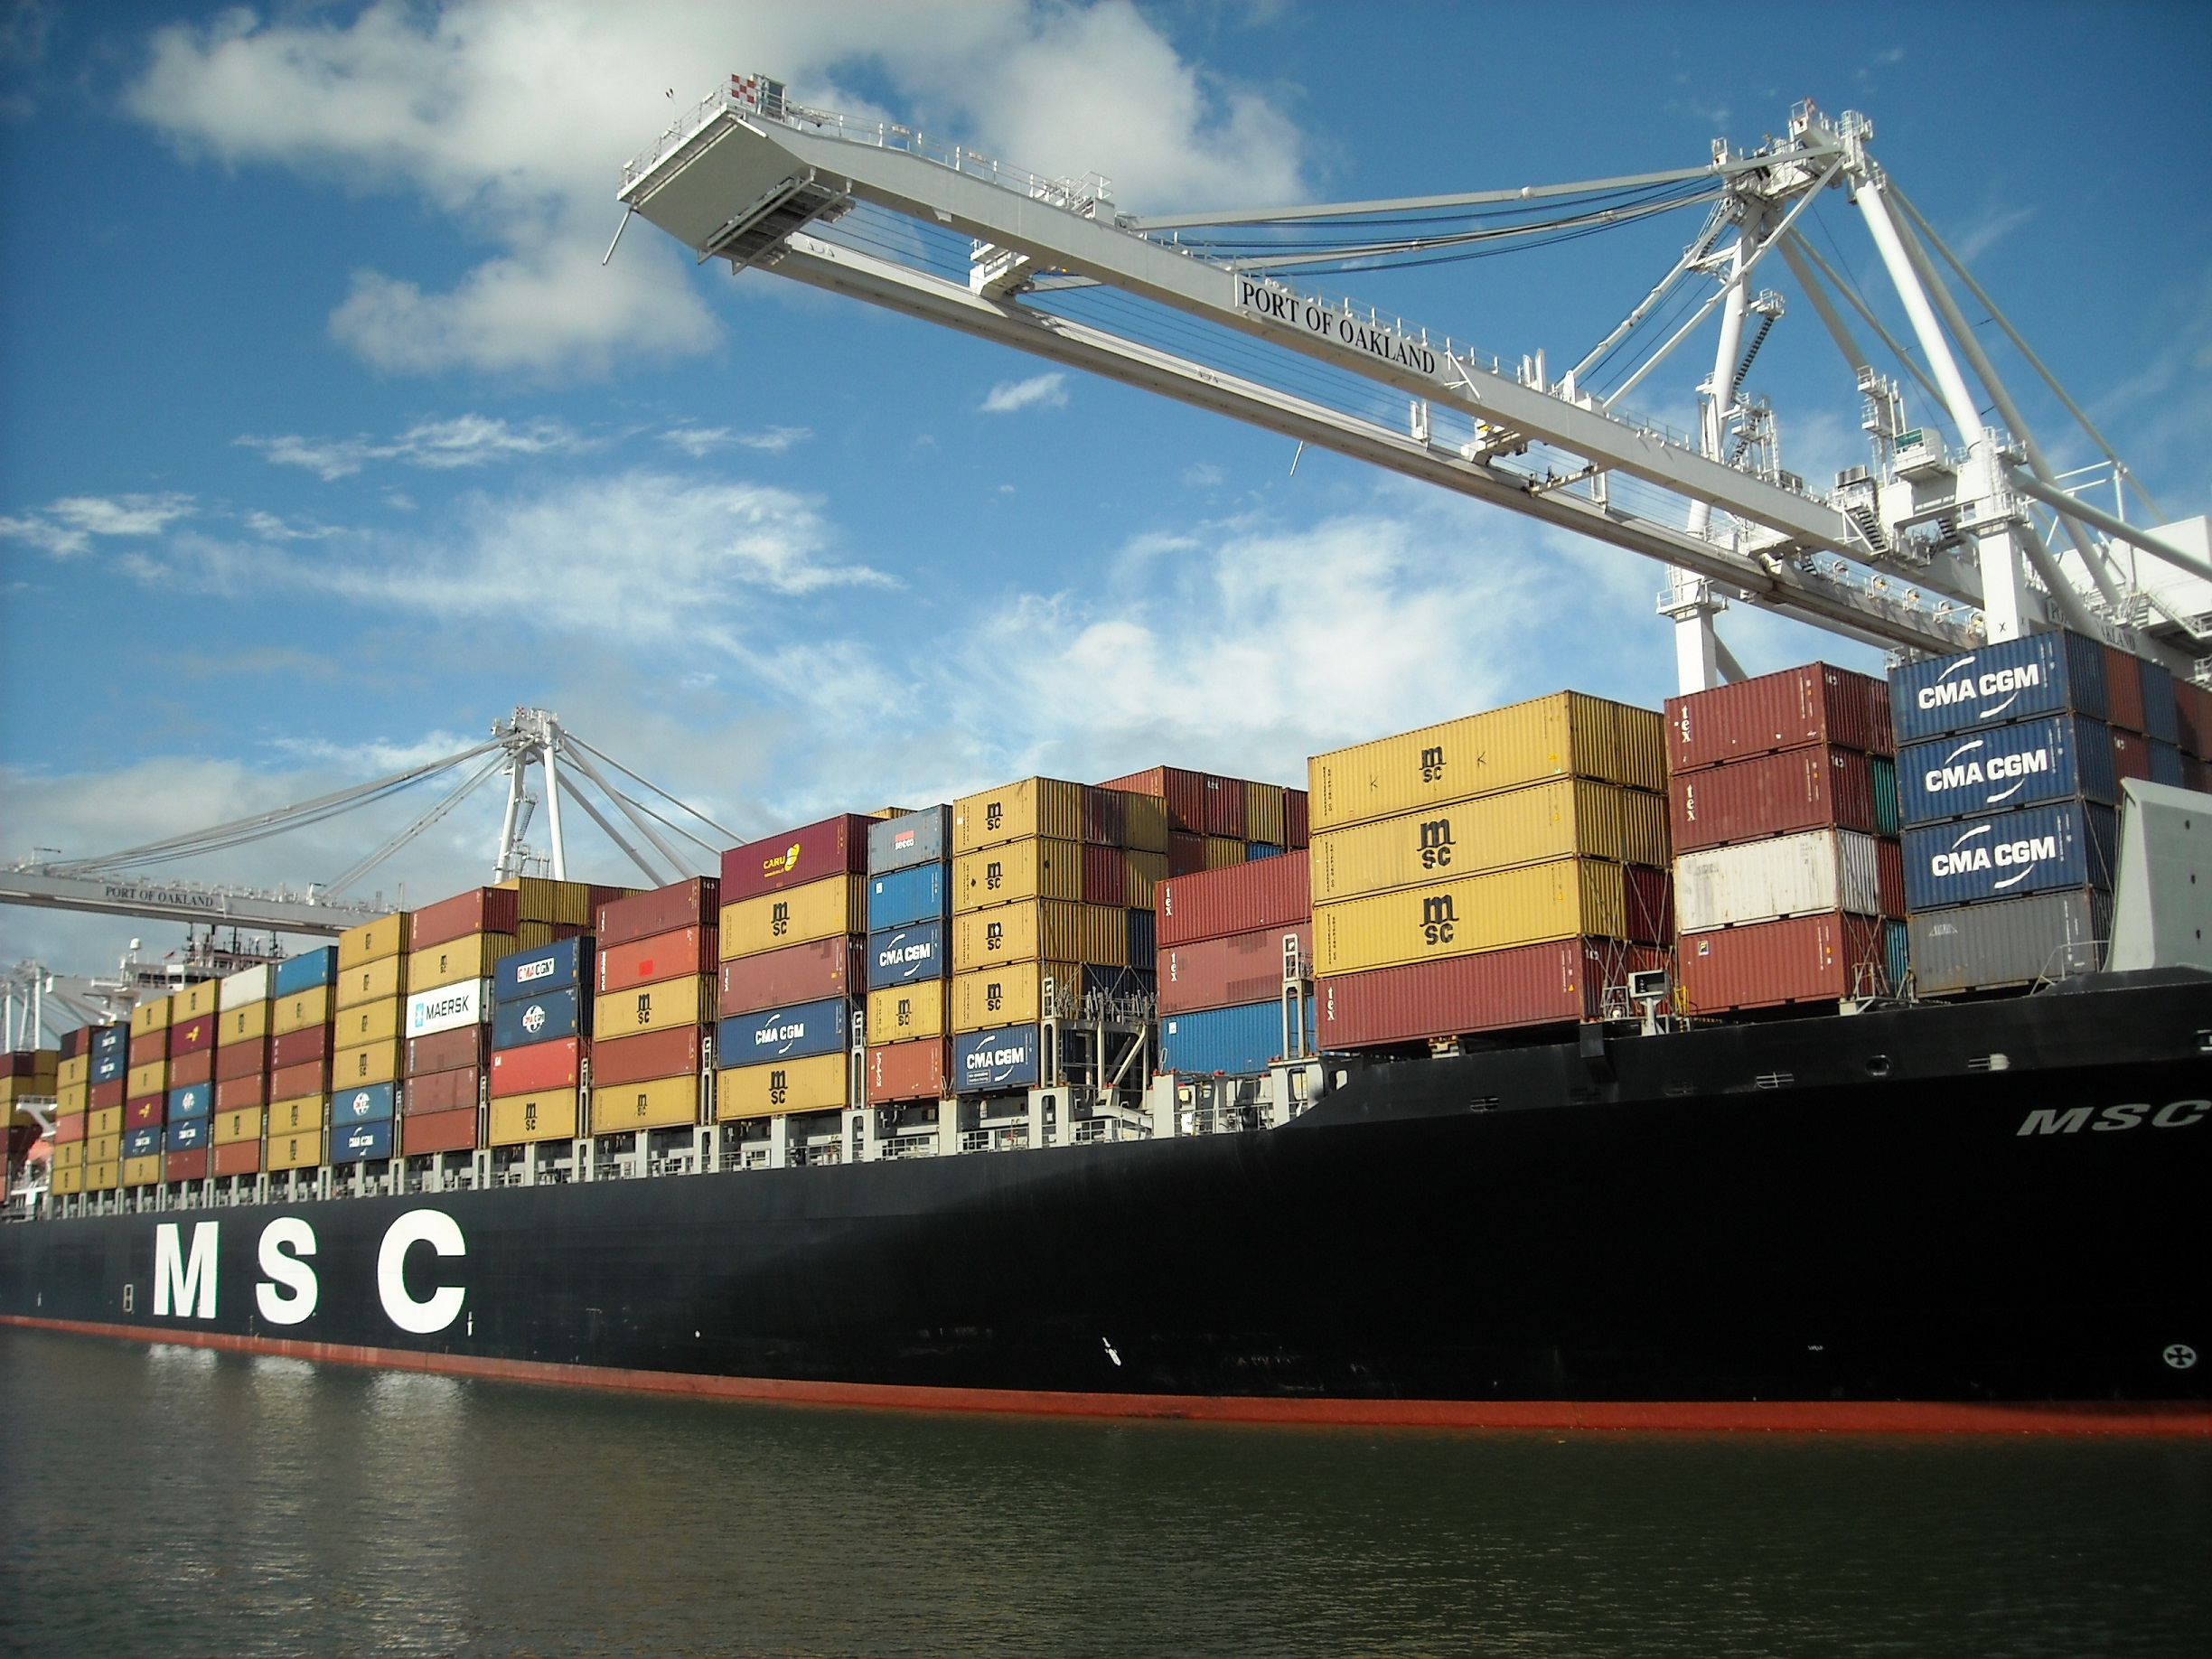 MSC Shipping Container Ship SBLK